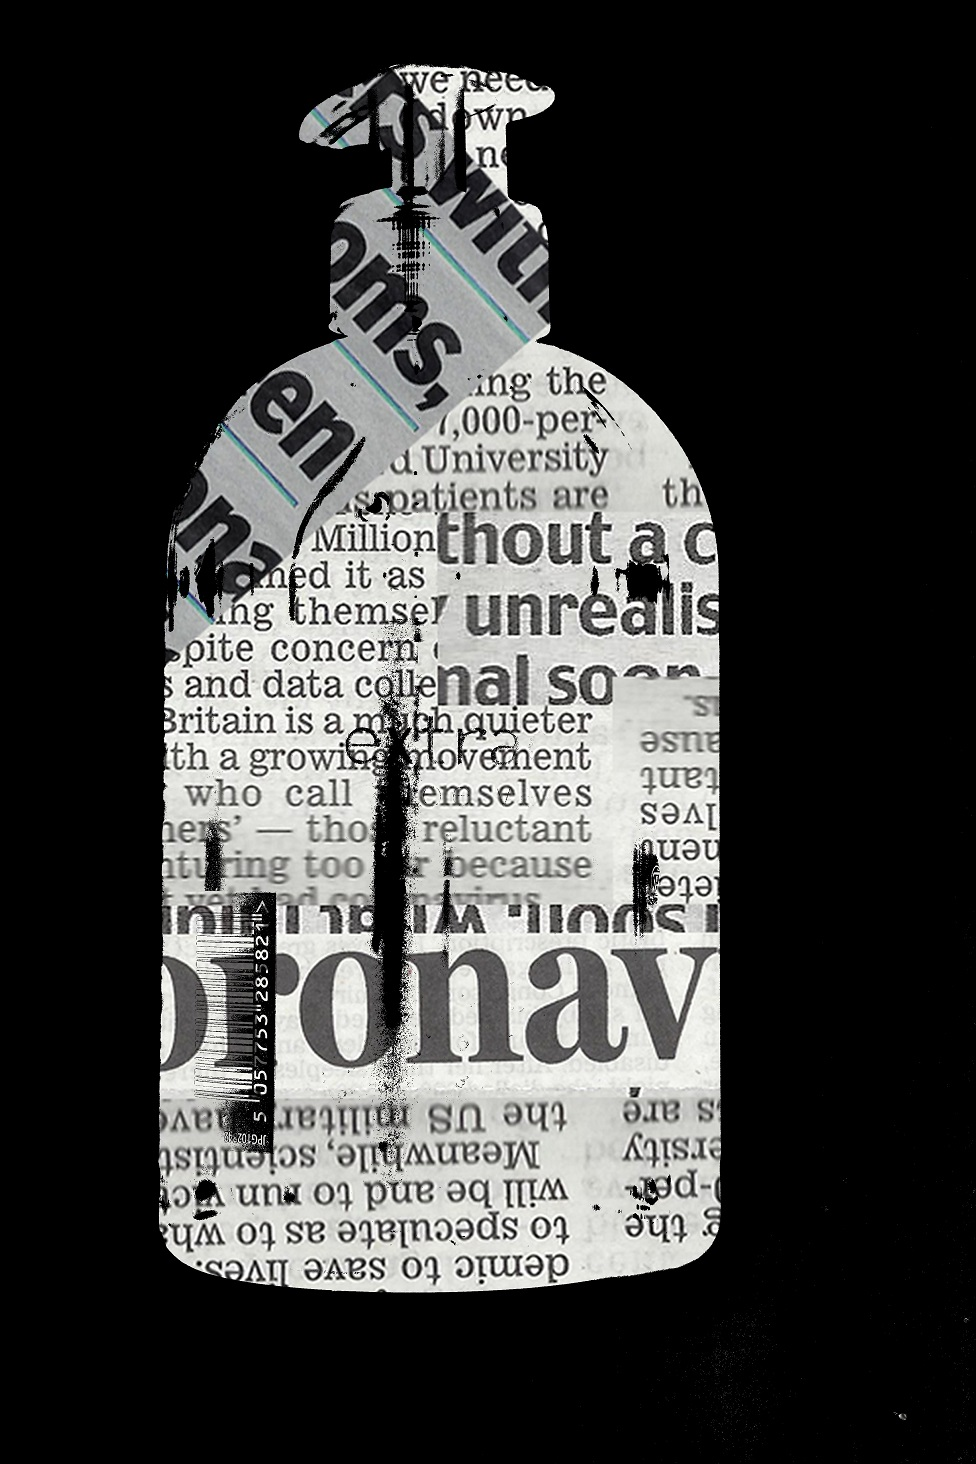 A collage newspaper cuttings in the shape of a bottle of hand soap